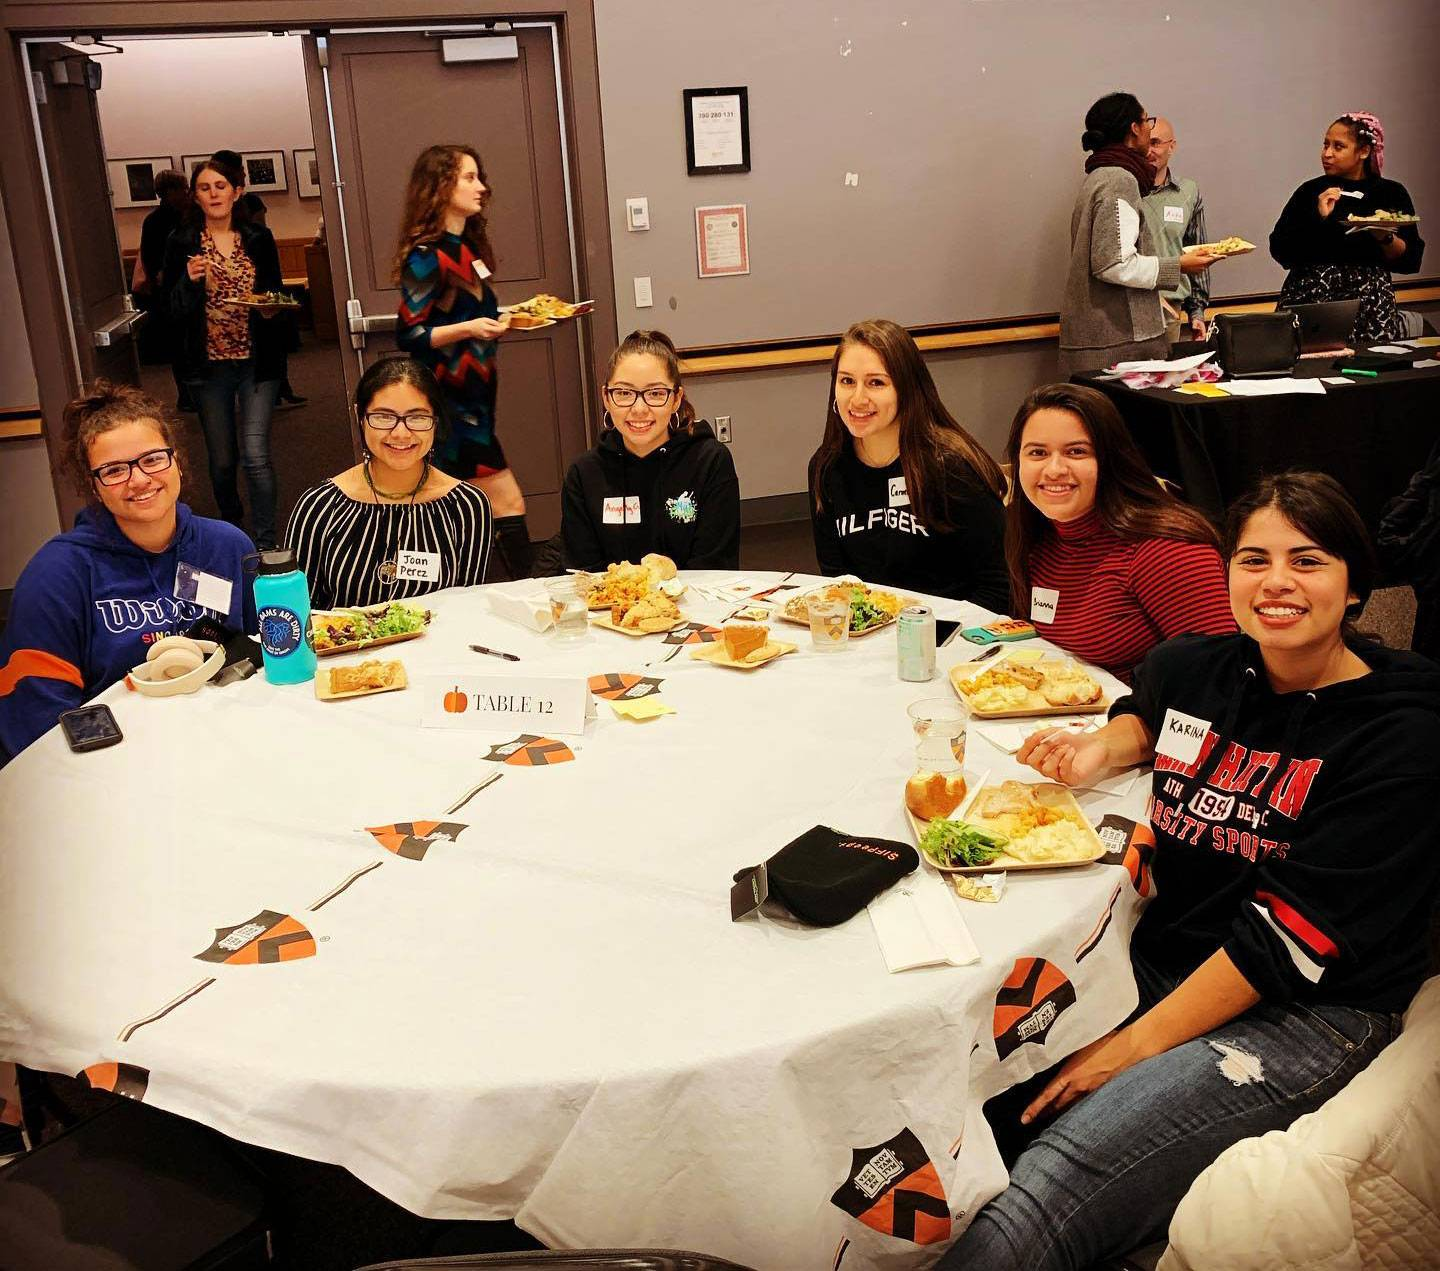 Students share a meal together at a table